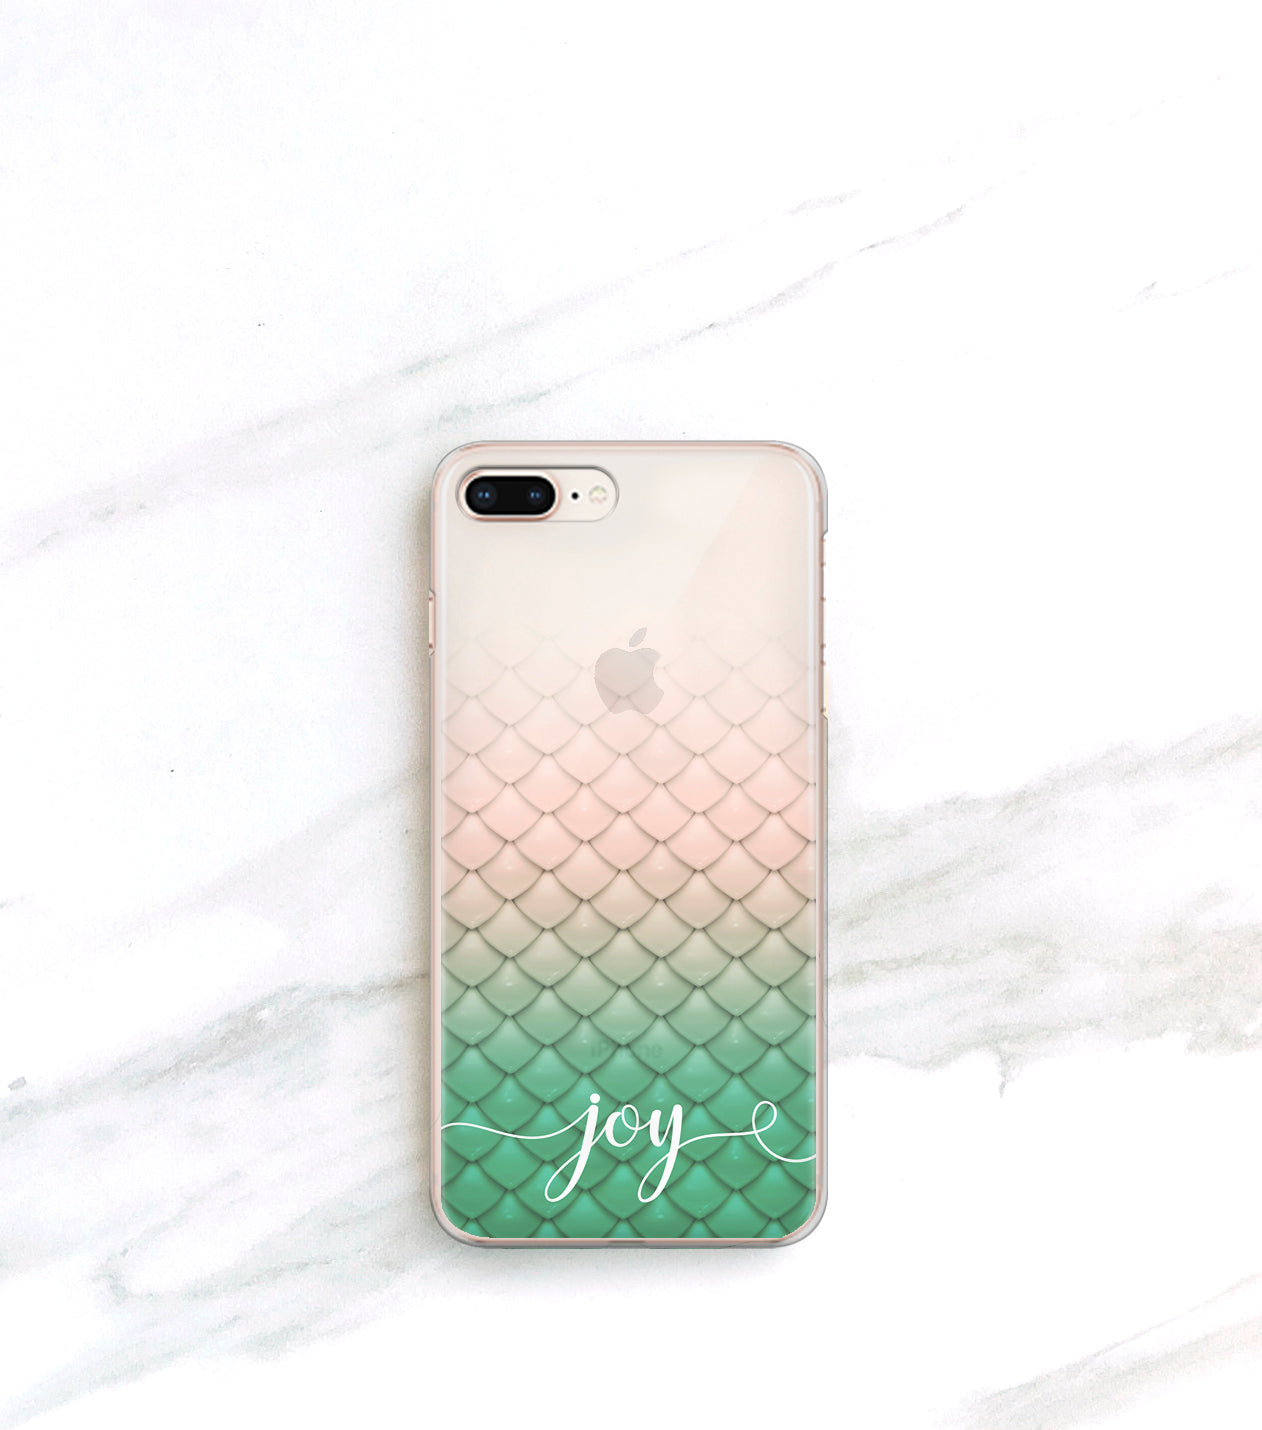 Mermaid case for iPhone 8 Plus